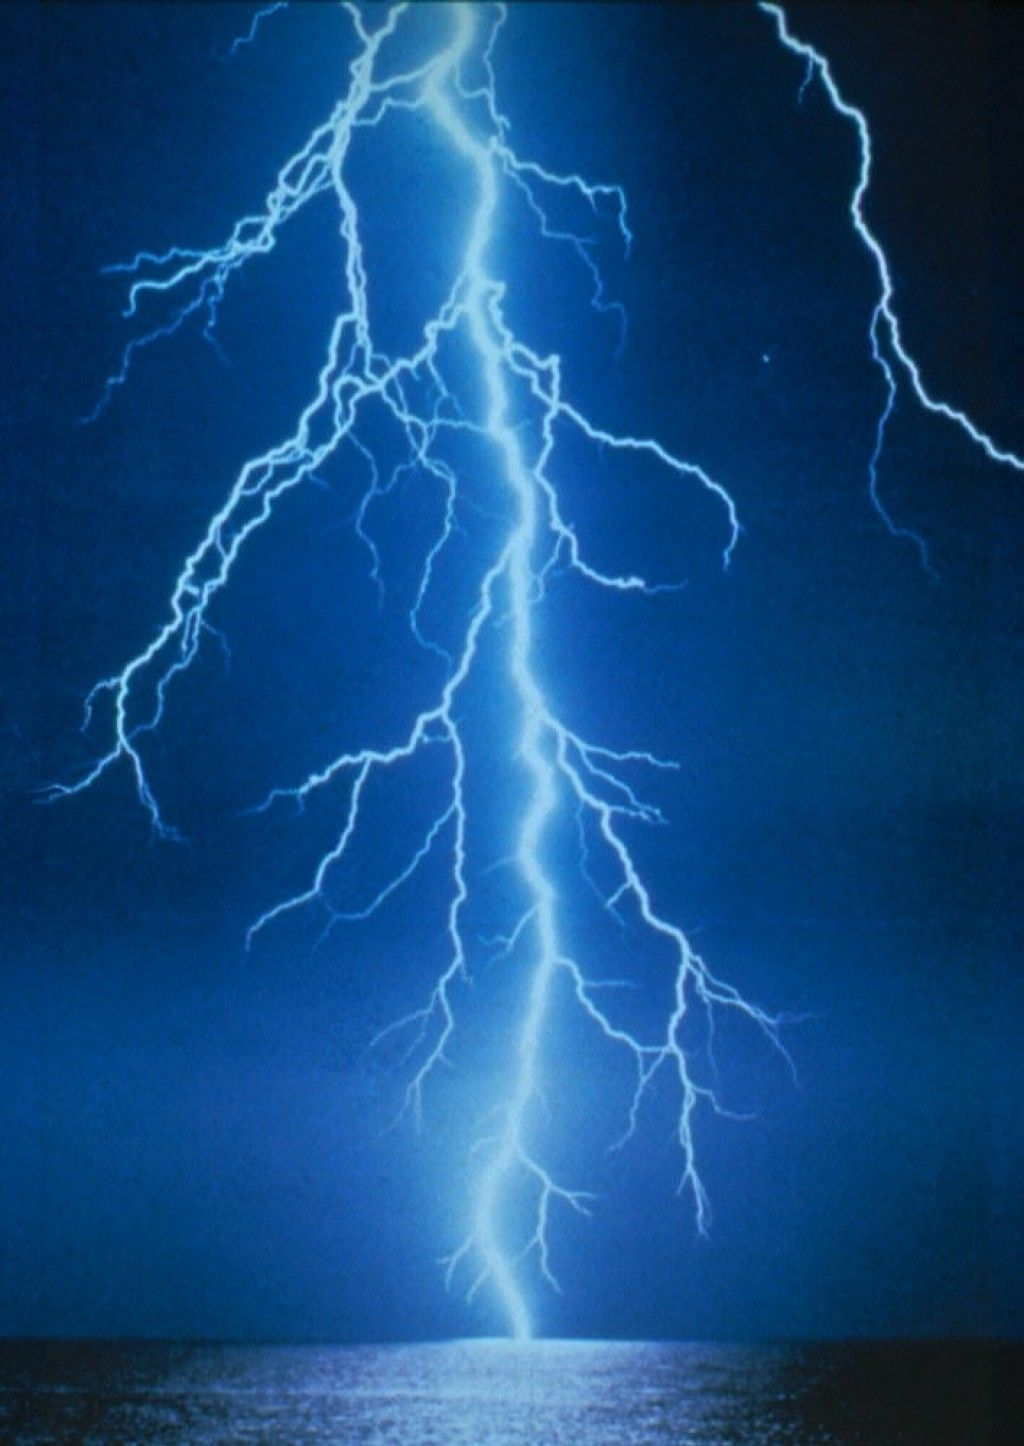 I try not to dwell on this subject very much, but a little over a year ago while at work I was so close to a lightning strike that it stopped my heart. One of my co-workers who is 240lbs was tosed in the air from the violent explosion as it struck....